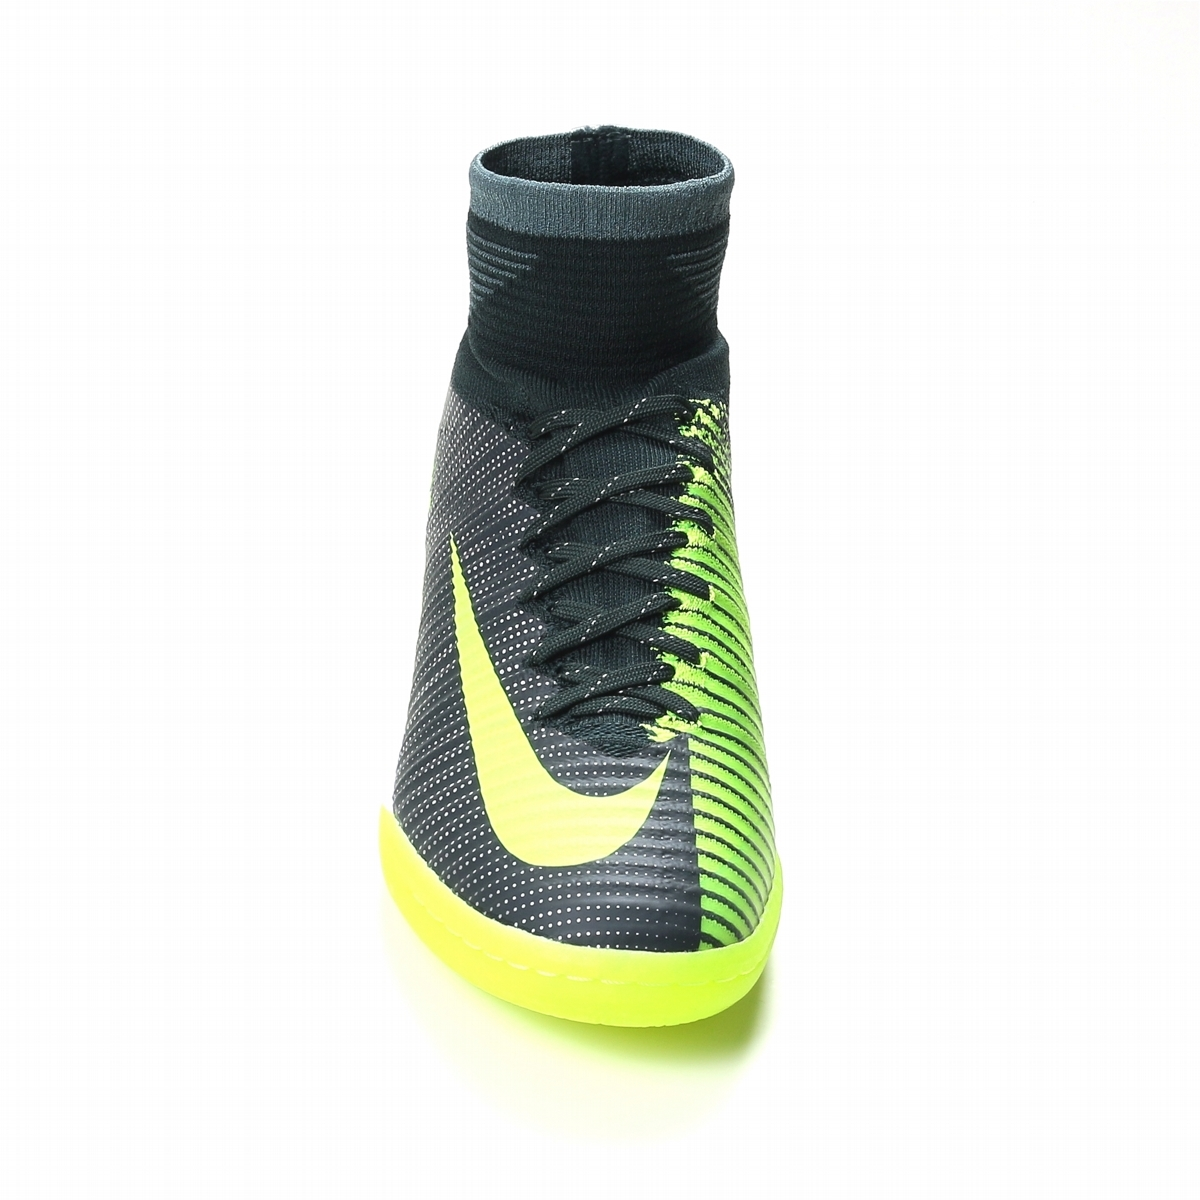 Nike MercurialX Proximo II CR7 IC Indoor Soccer Shoes (Seaweed/Volt/Hasta /White)